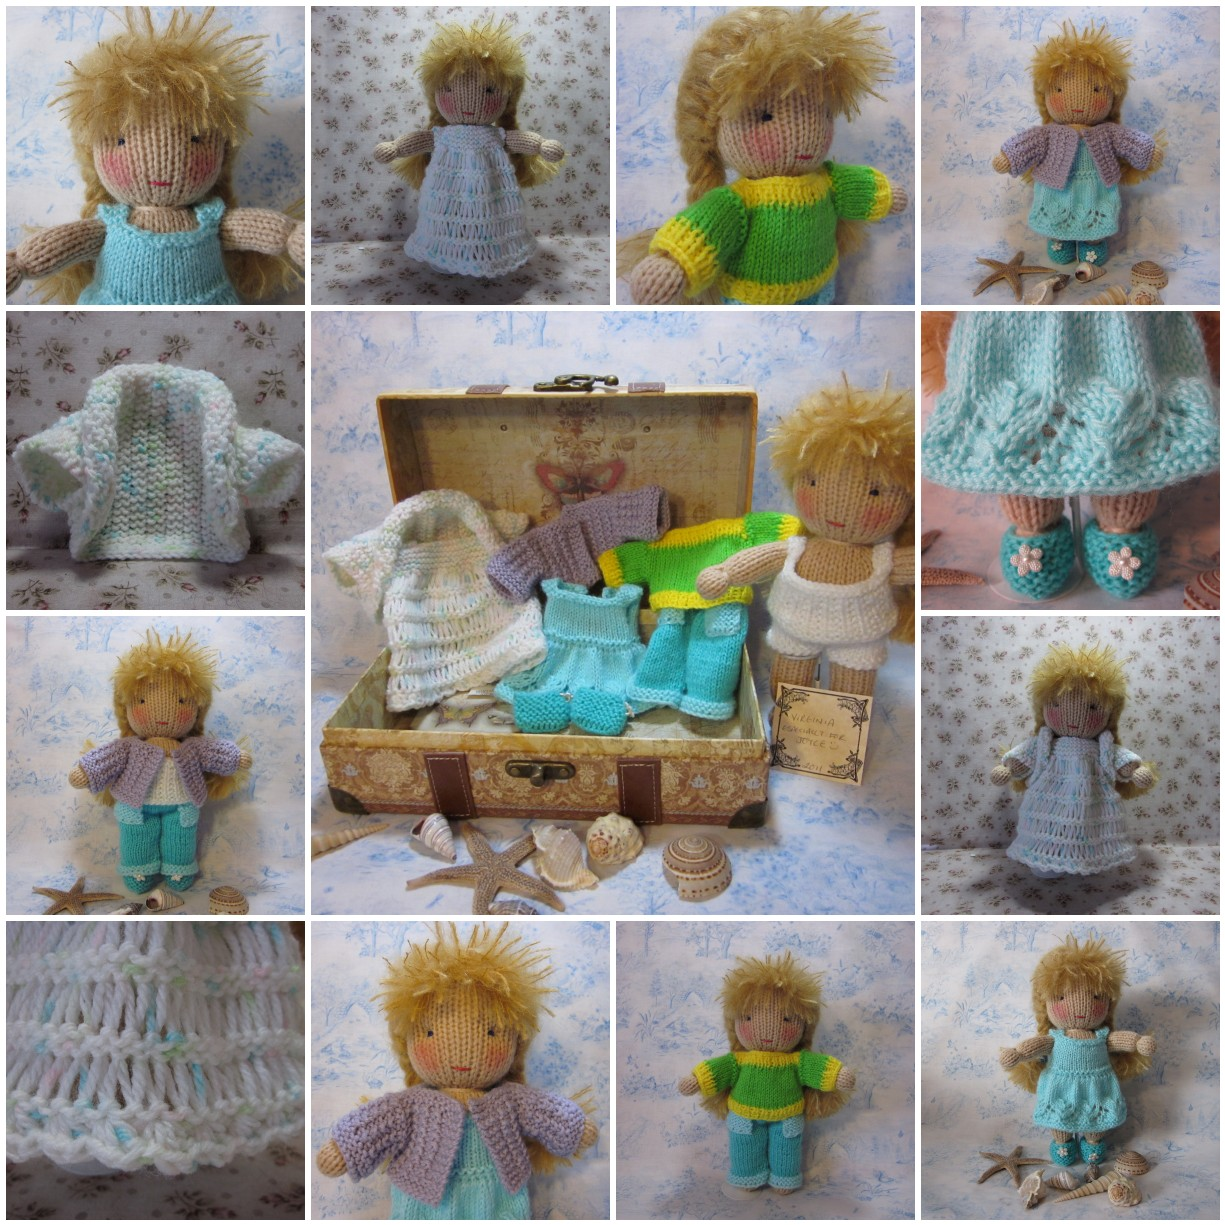 Crochet Knit Stitch Waldorf : By Hook, By Hand: Virginia, a knit Waldorf style doll